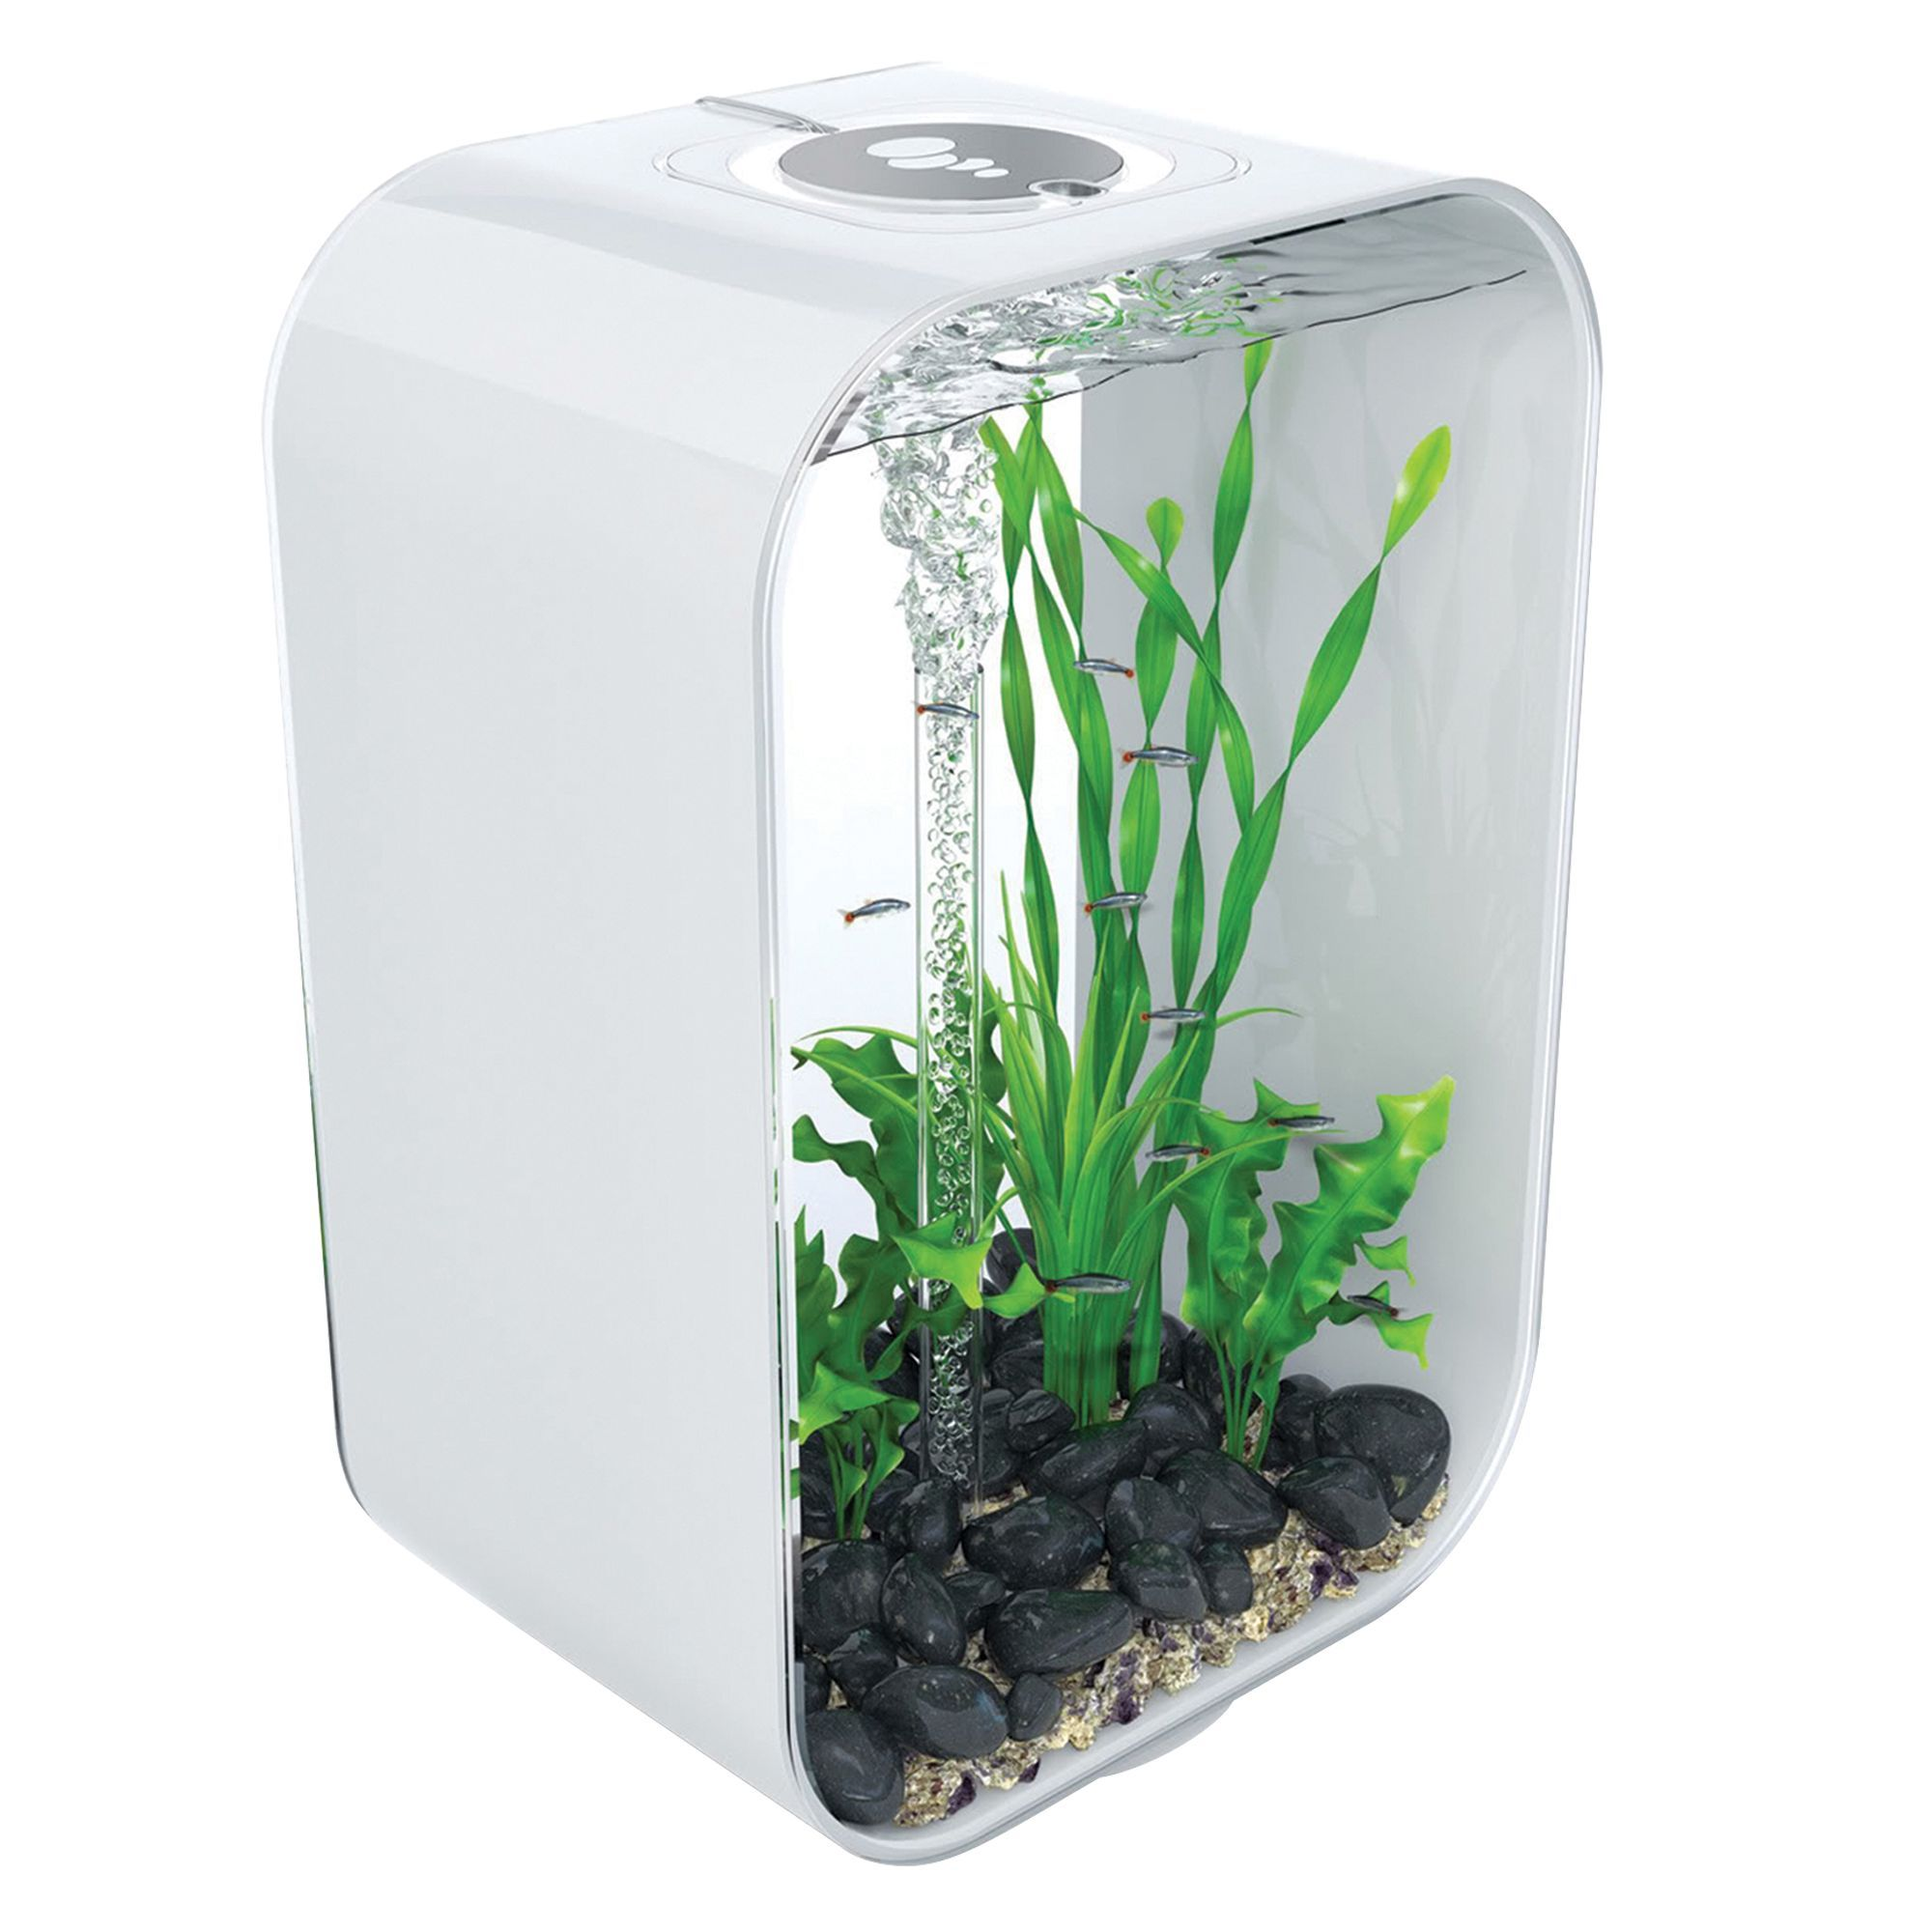 biOrb LIFE 12 Gallon LED Aquarium, White in 2020